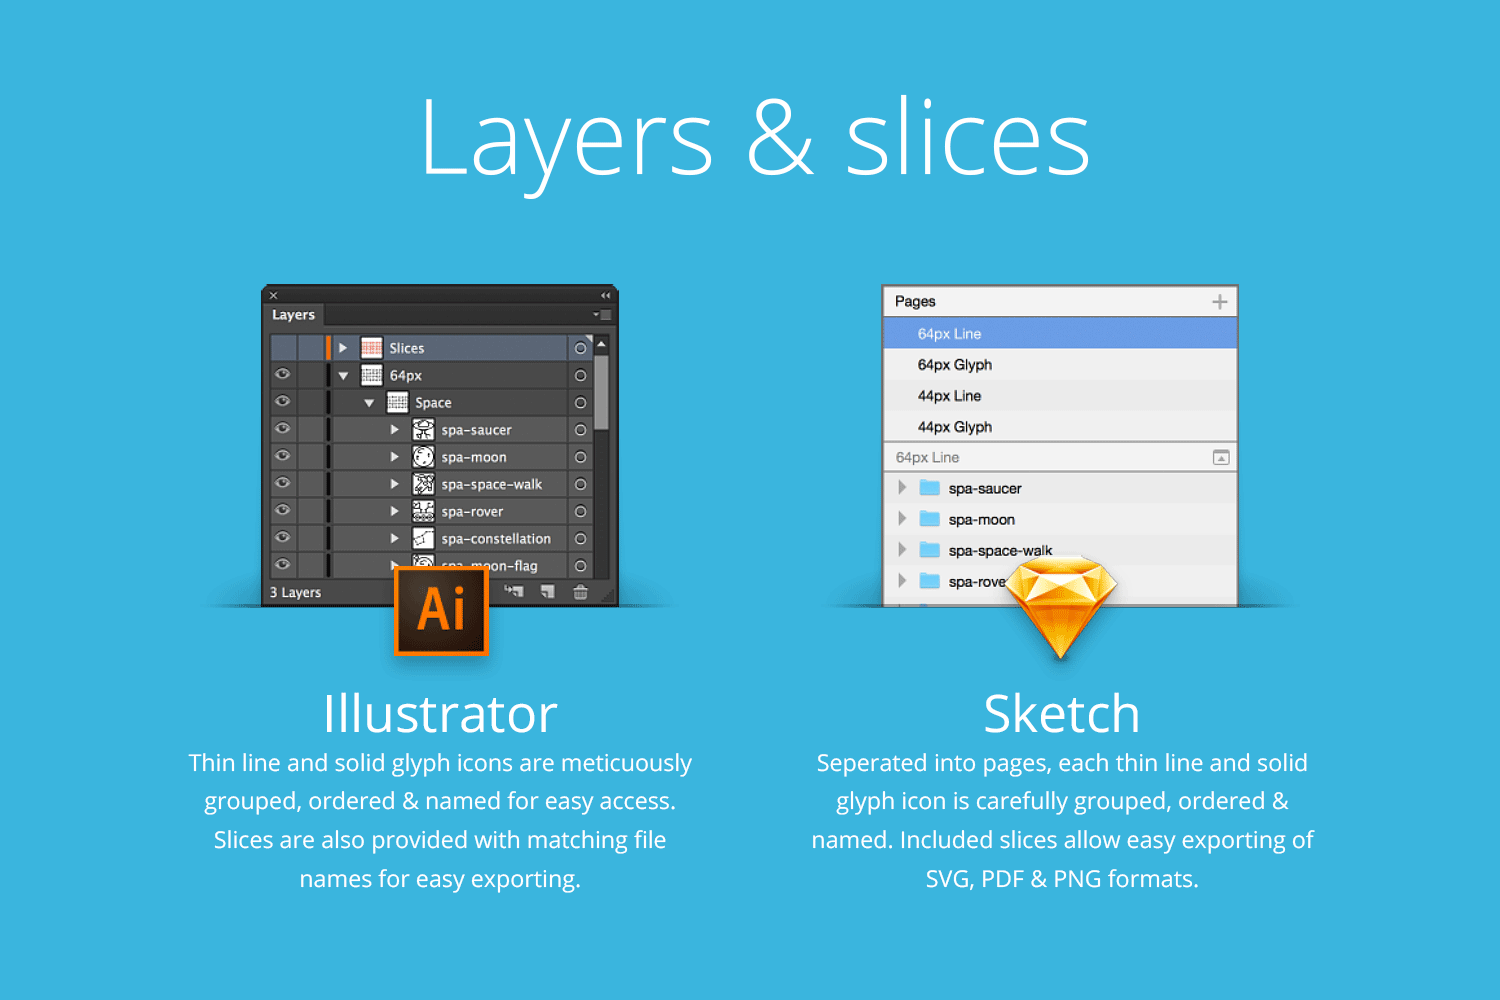 Organized layers and slices